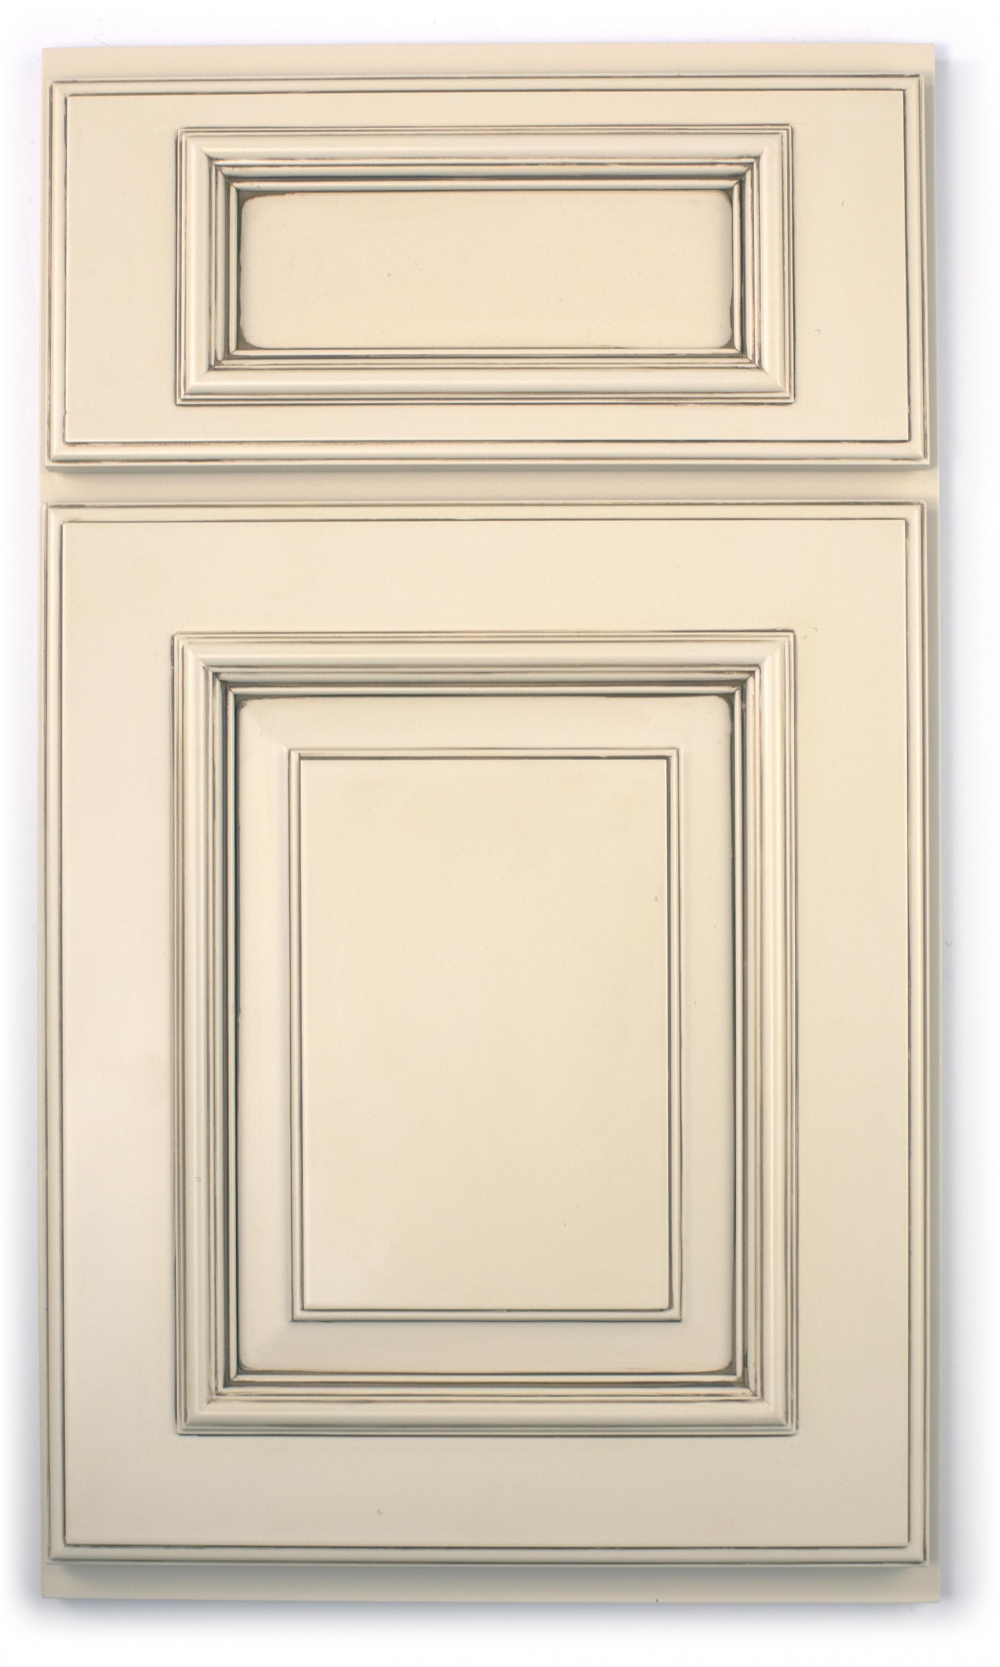 Cabinet Door Design > Premier Custom Cabinetry | Shutler ...